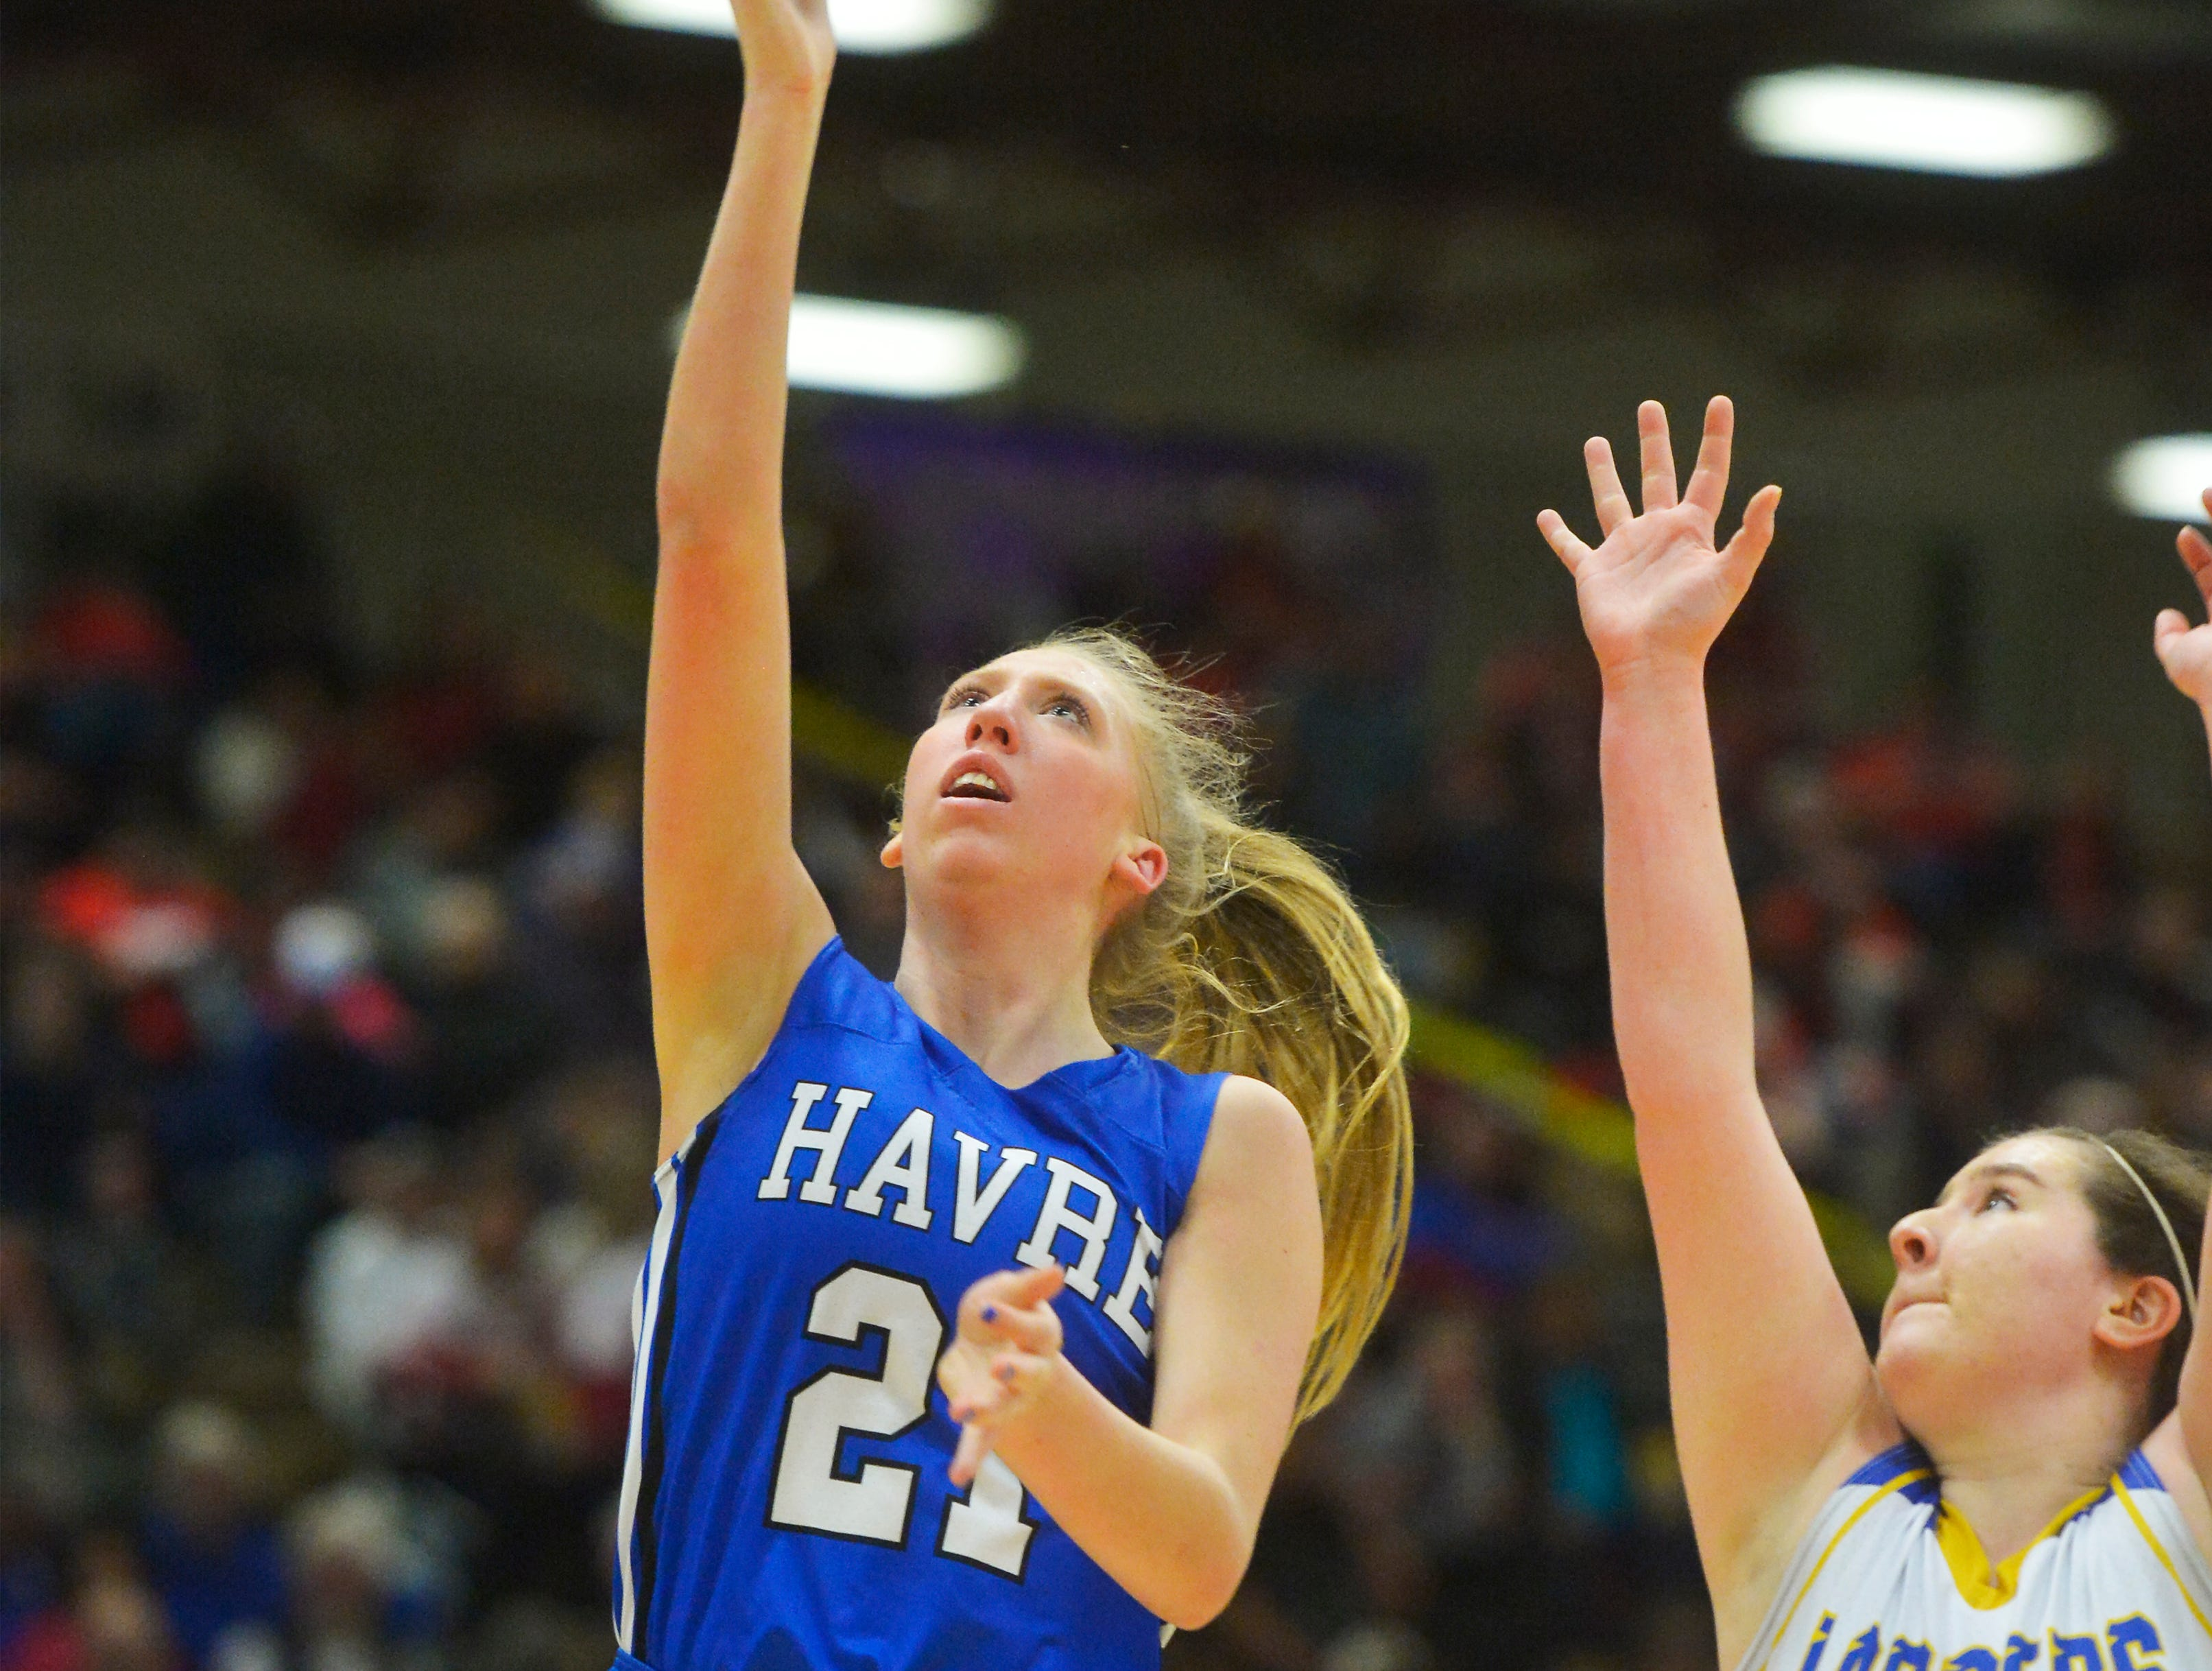 Havre's Kadia Miller shoots a layup during Thursday's game against Libby at the Class A State Basketball Tournament in the Four Seasons Arena.